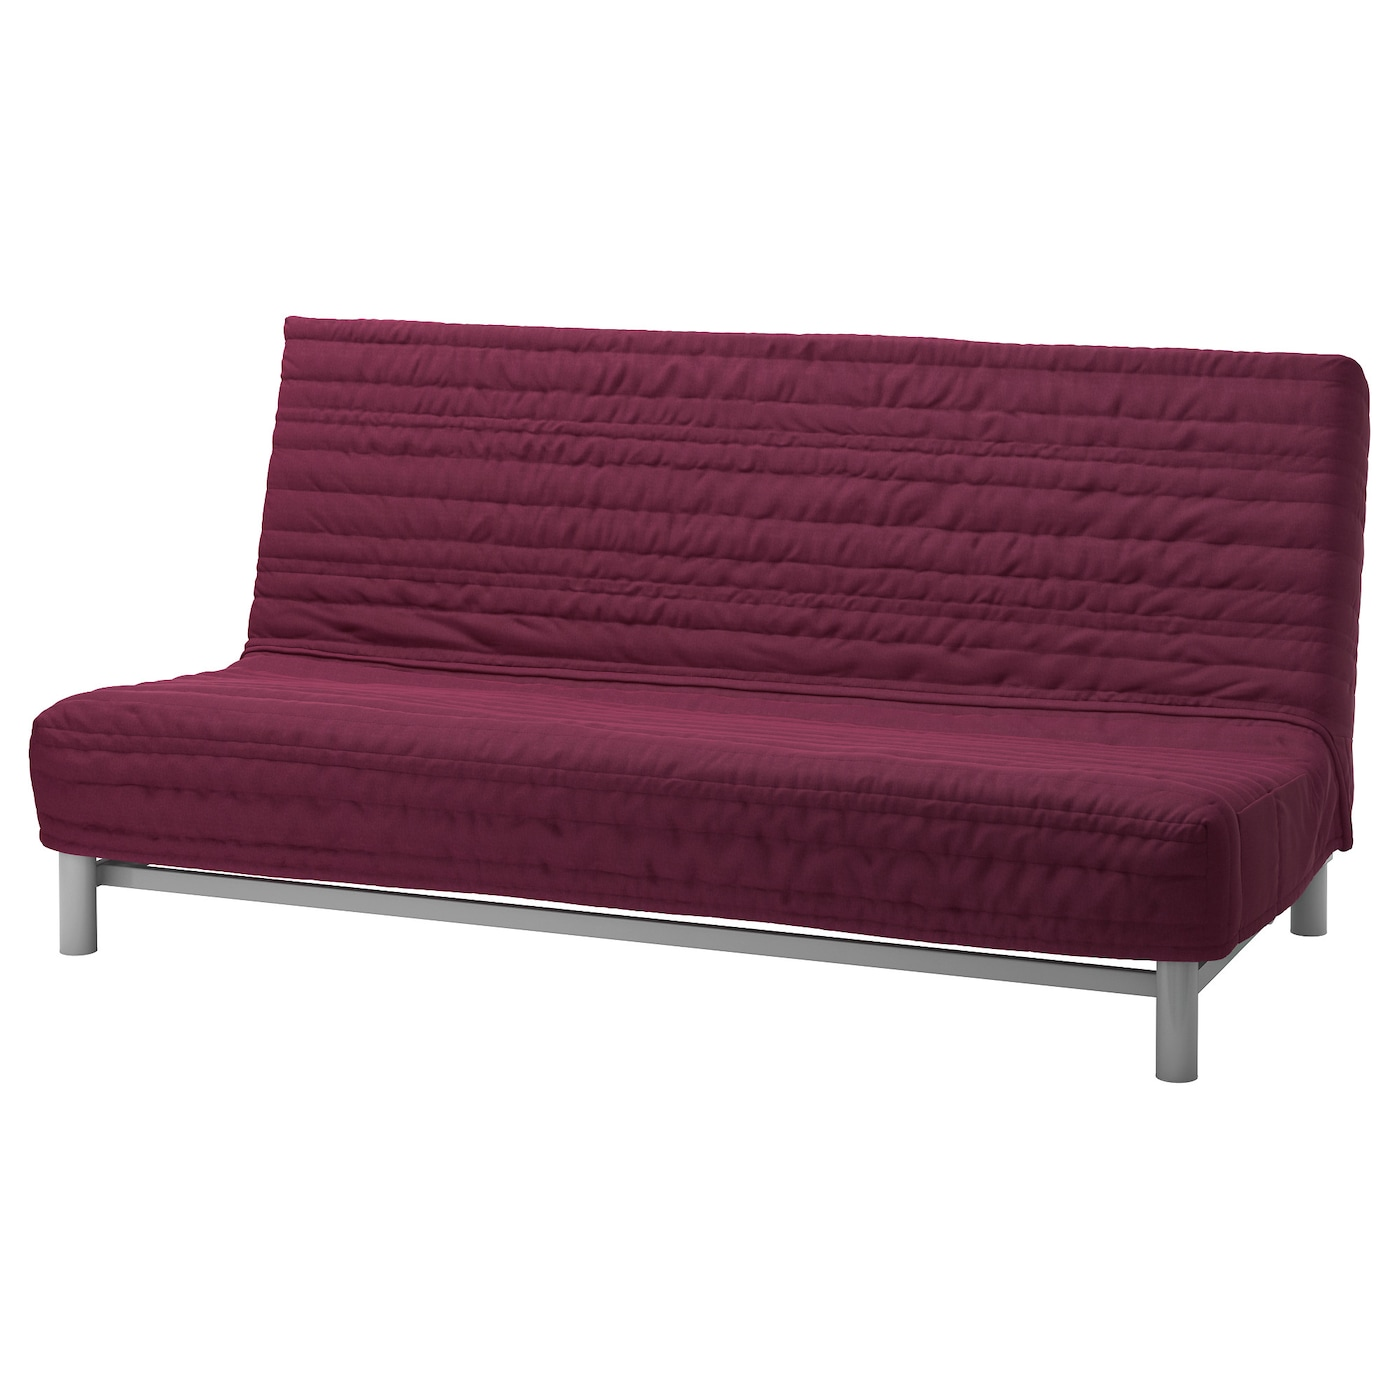 Beddinge l v s three seat sofa bed knisa cerise ikea for Sofa bed 3 2